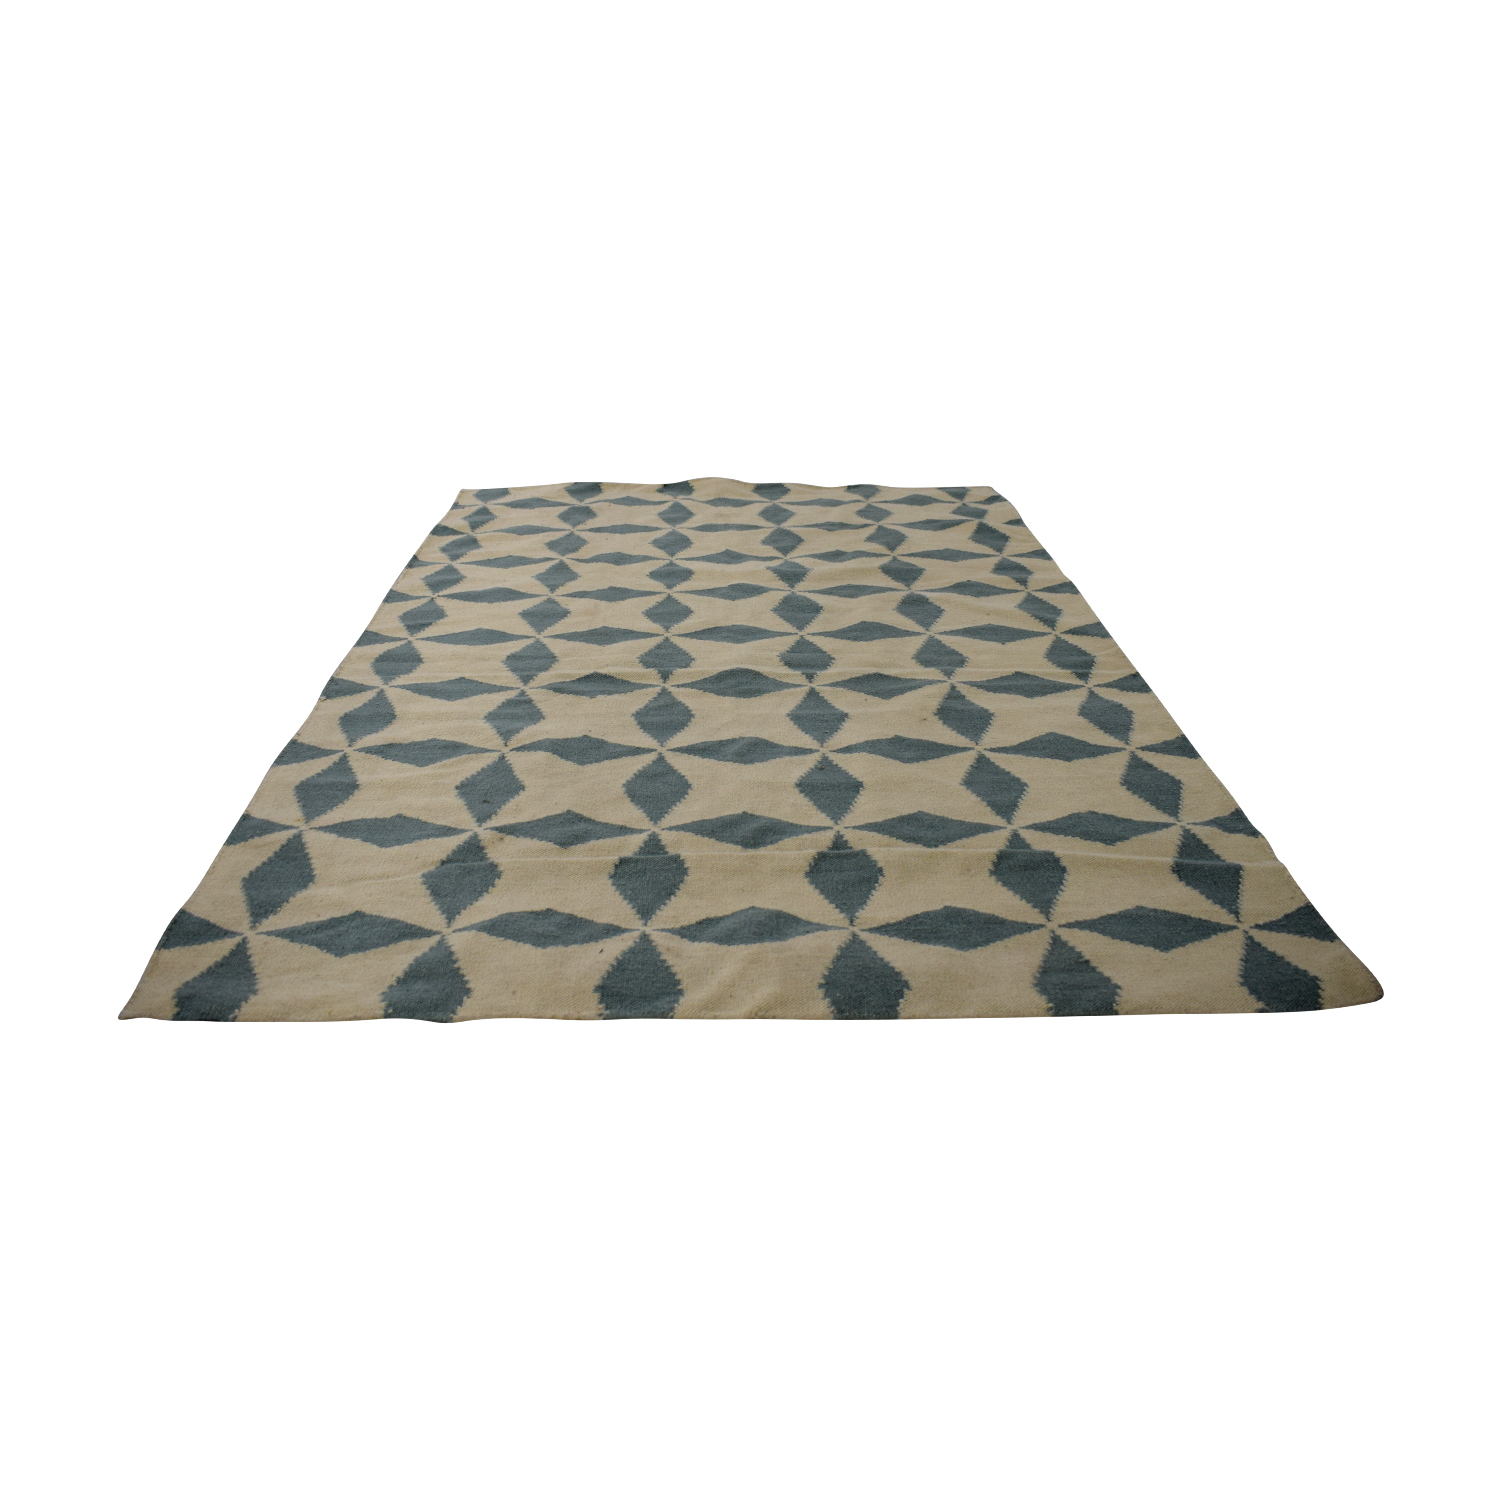 Dash and Albert Beige Patterened Rug sale